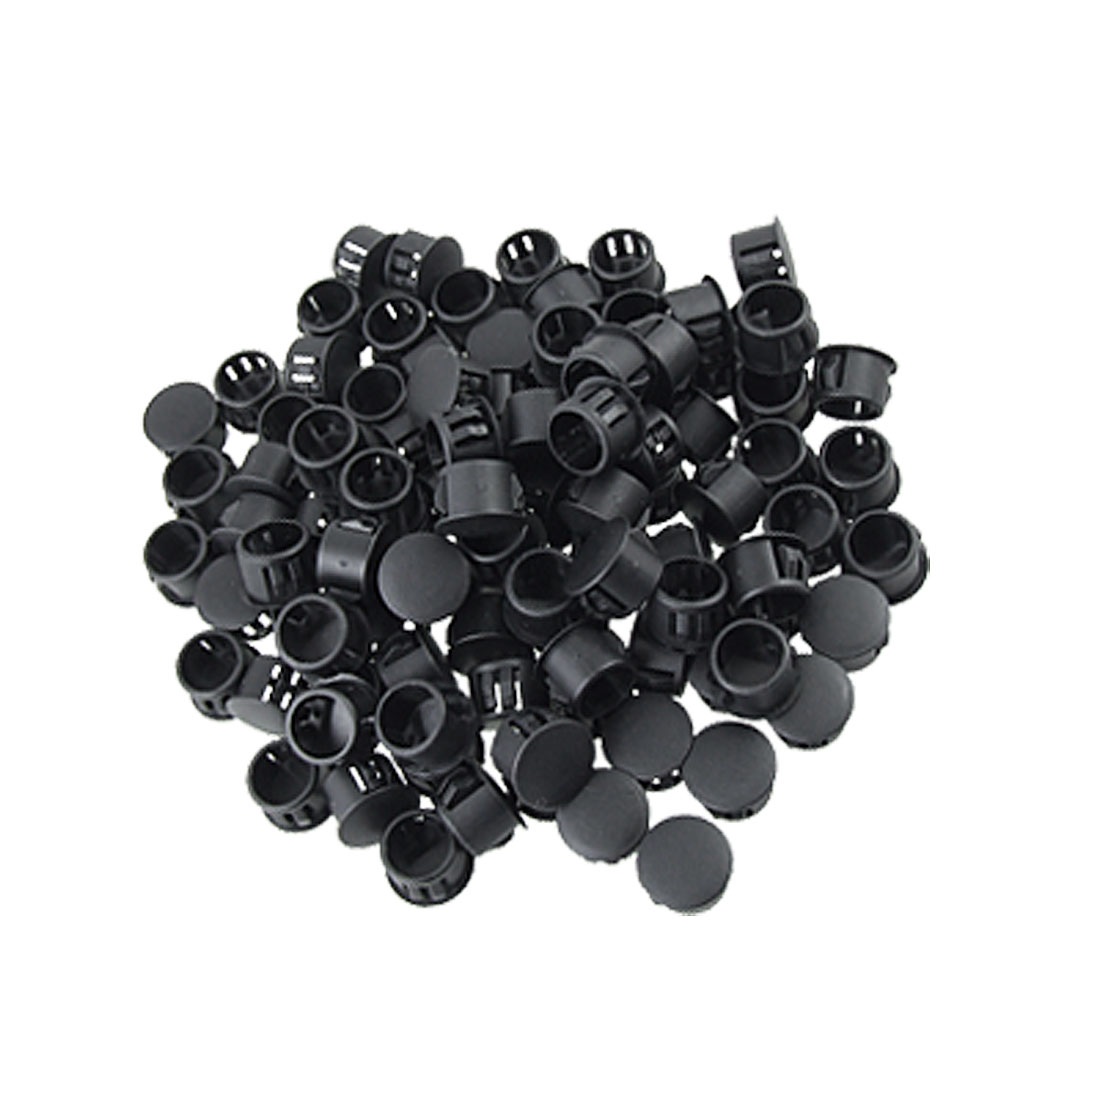 "Plastic Black 7/16"" Head Dia Locking Hole Plugs 100 Pcs"